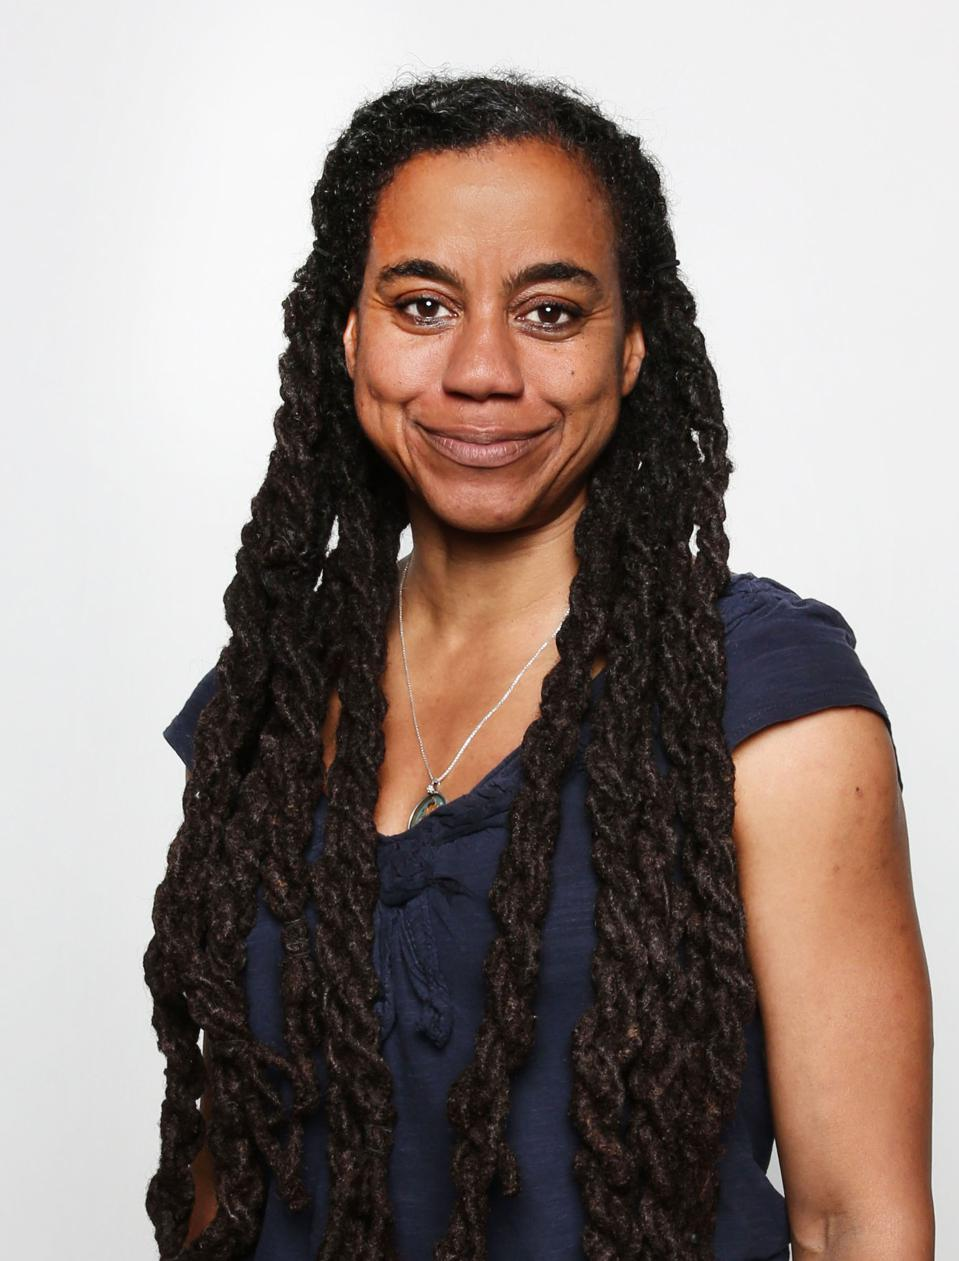 11 years ago Suzan-Lori Parks created Watch Me Work to help inspire creatives to do their work.